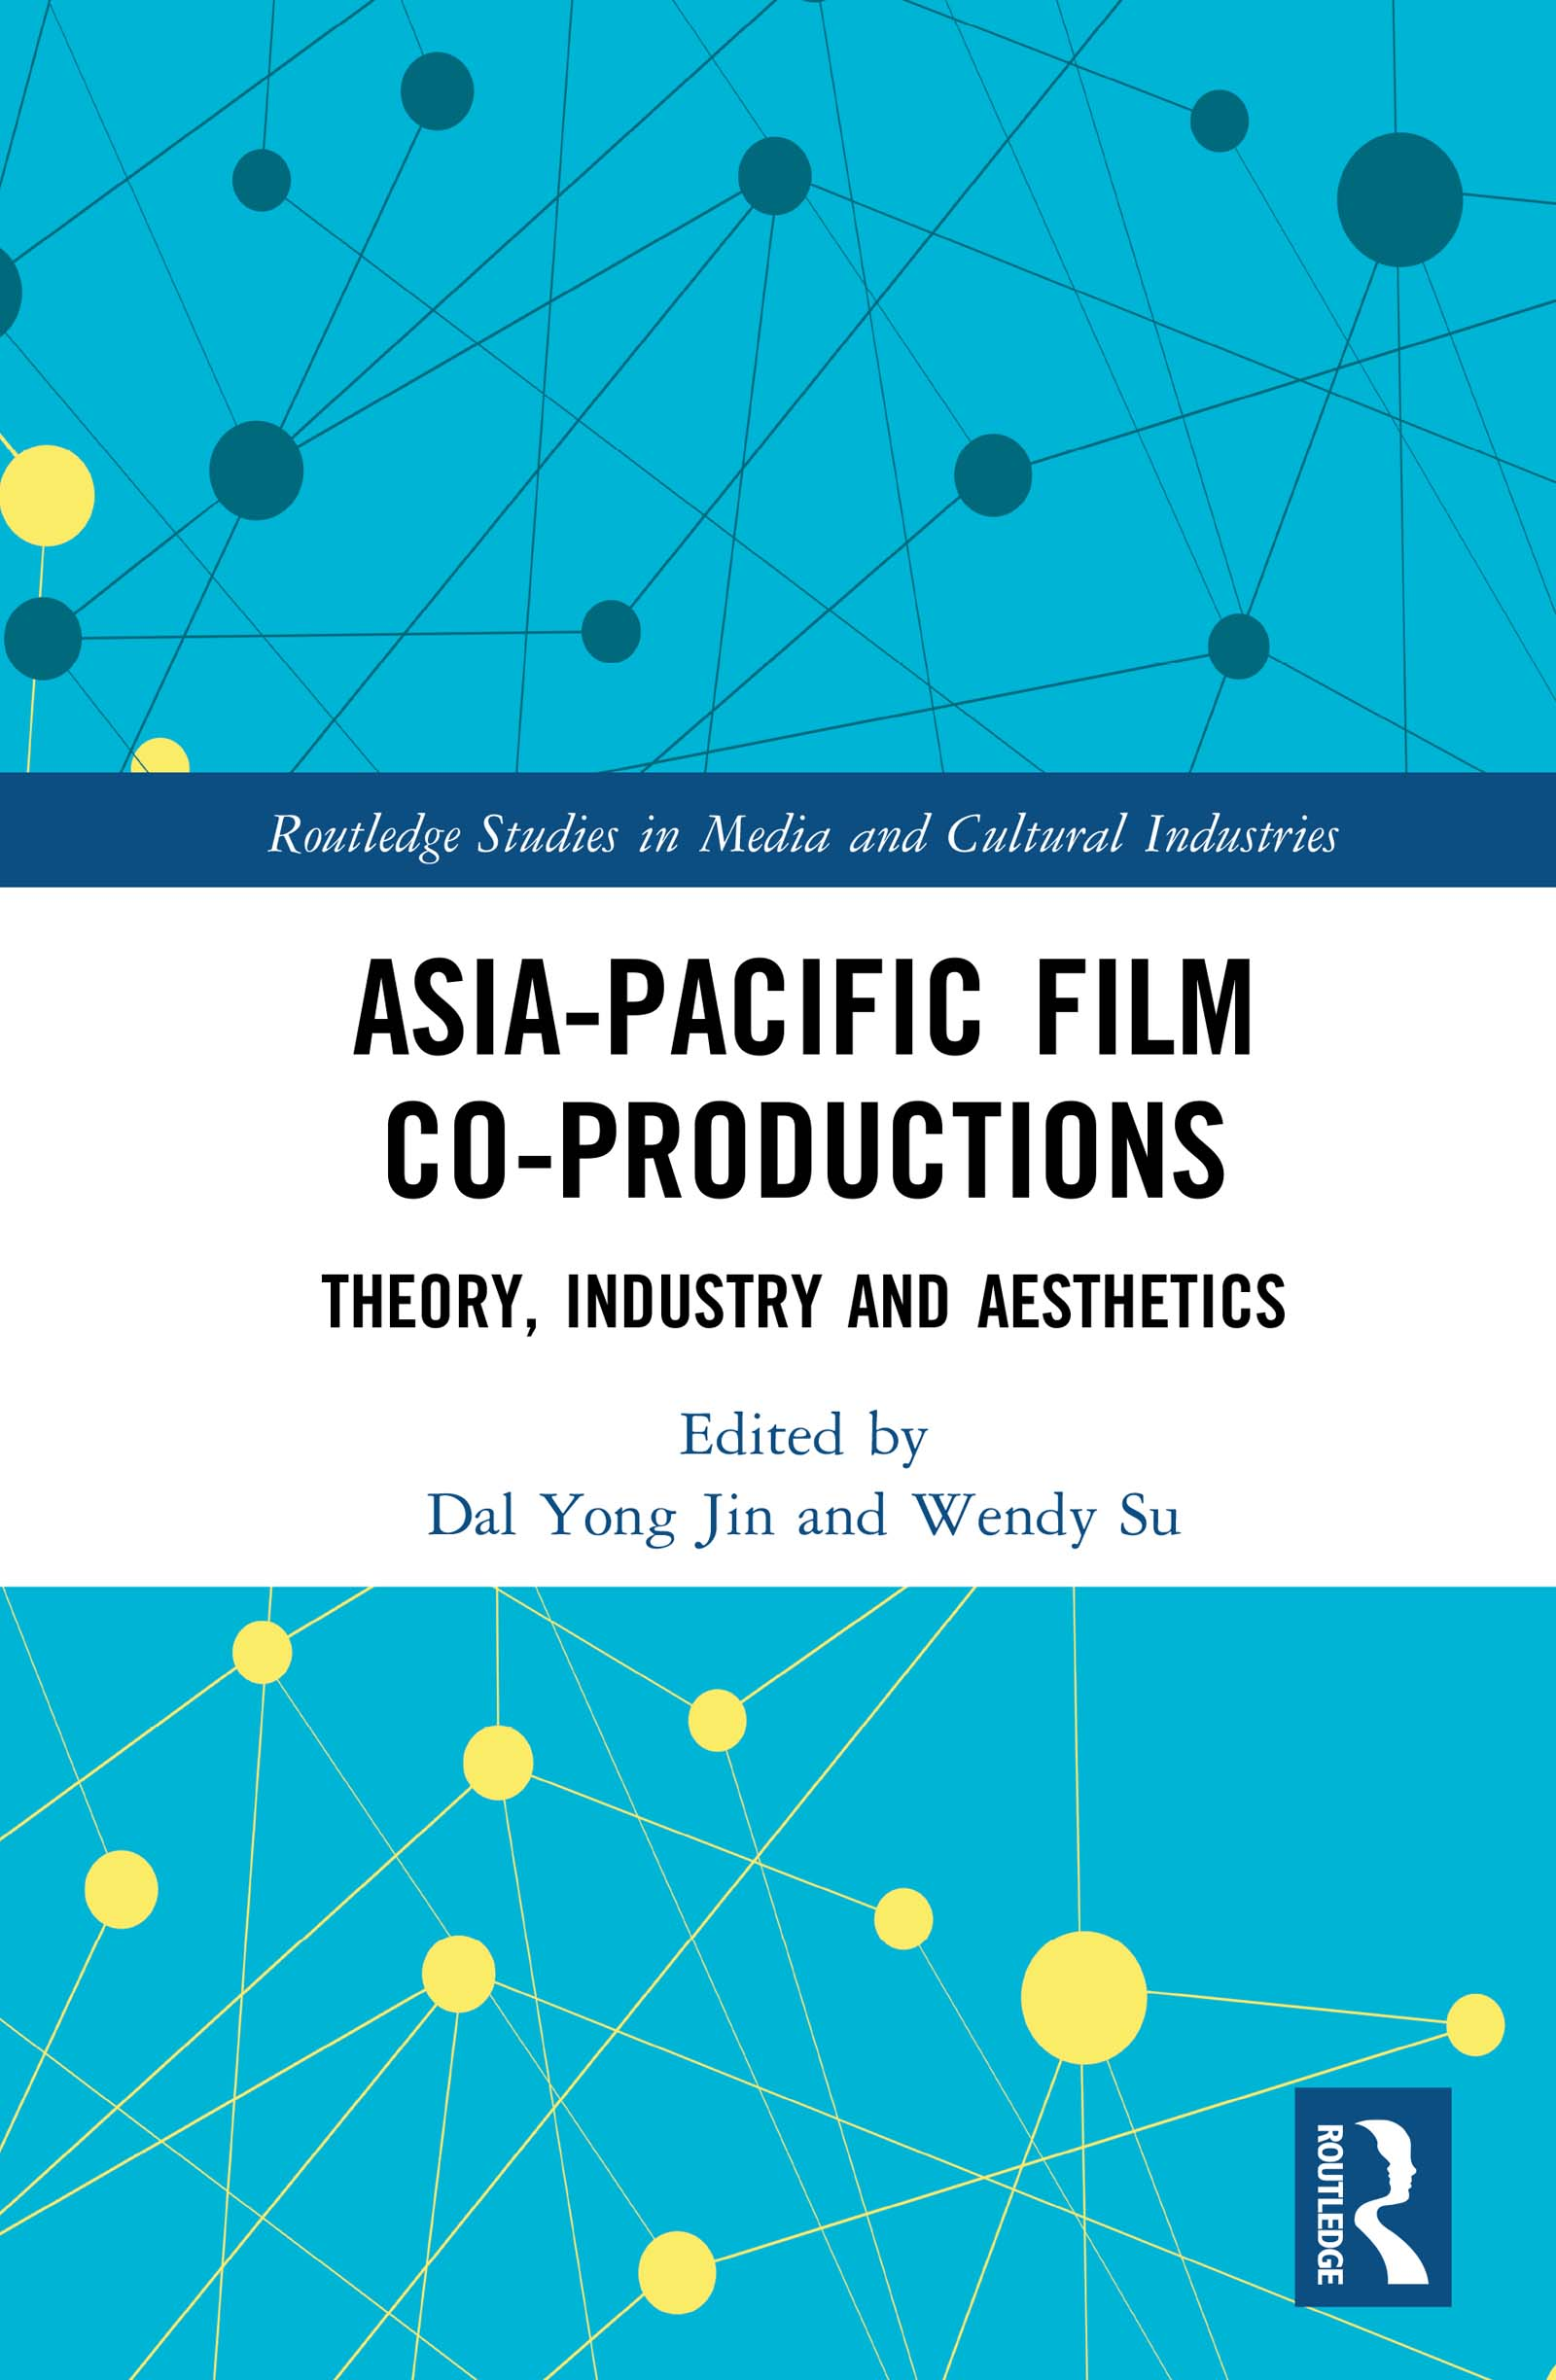 Asia-Pacific Film Co-productions Theory, Industry and Aesthetics book cover